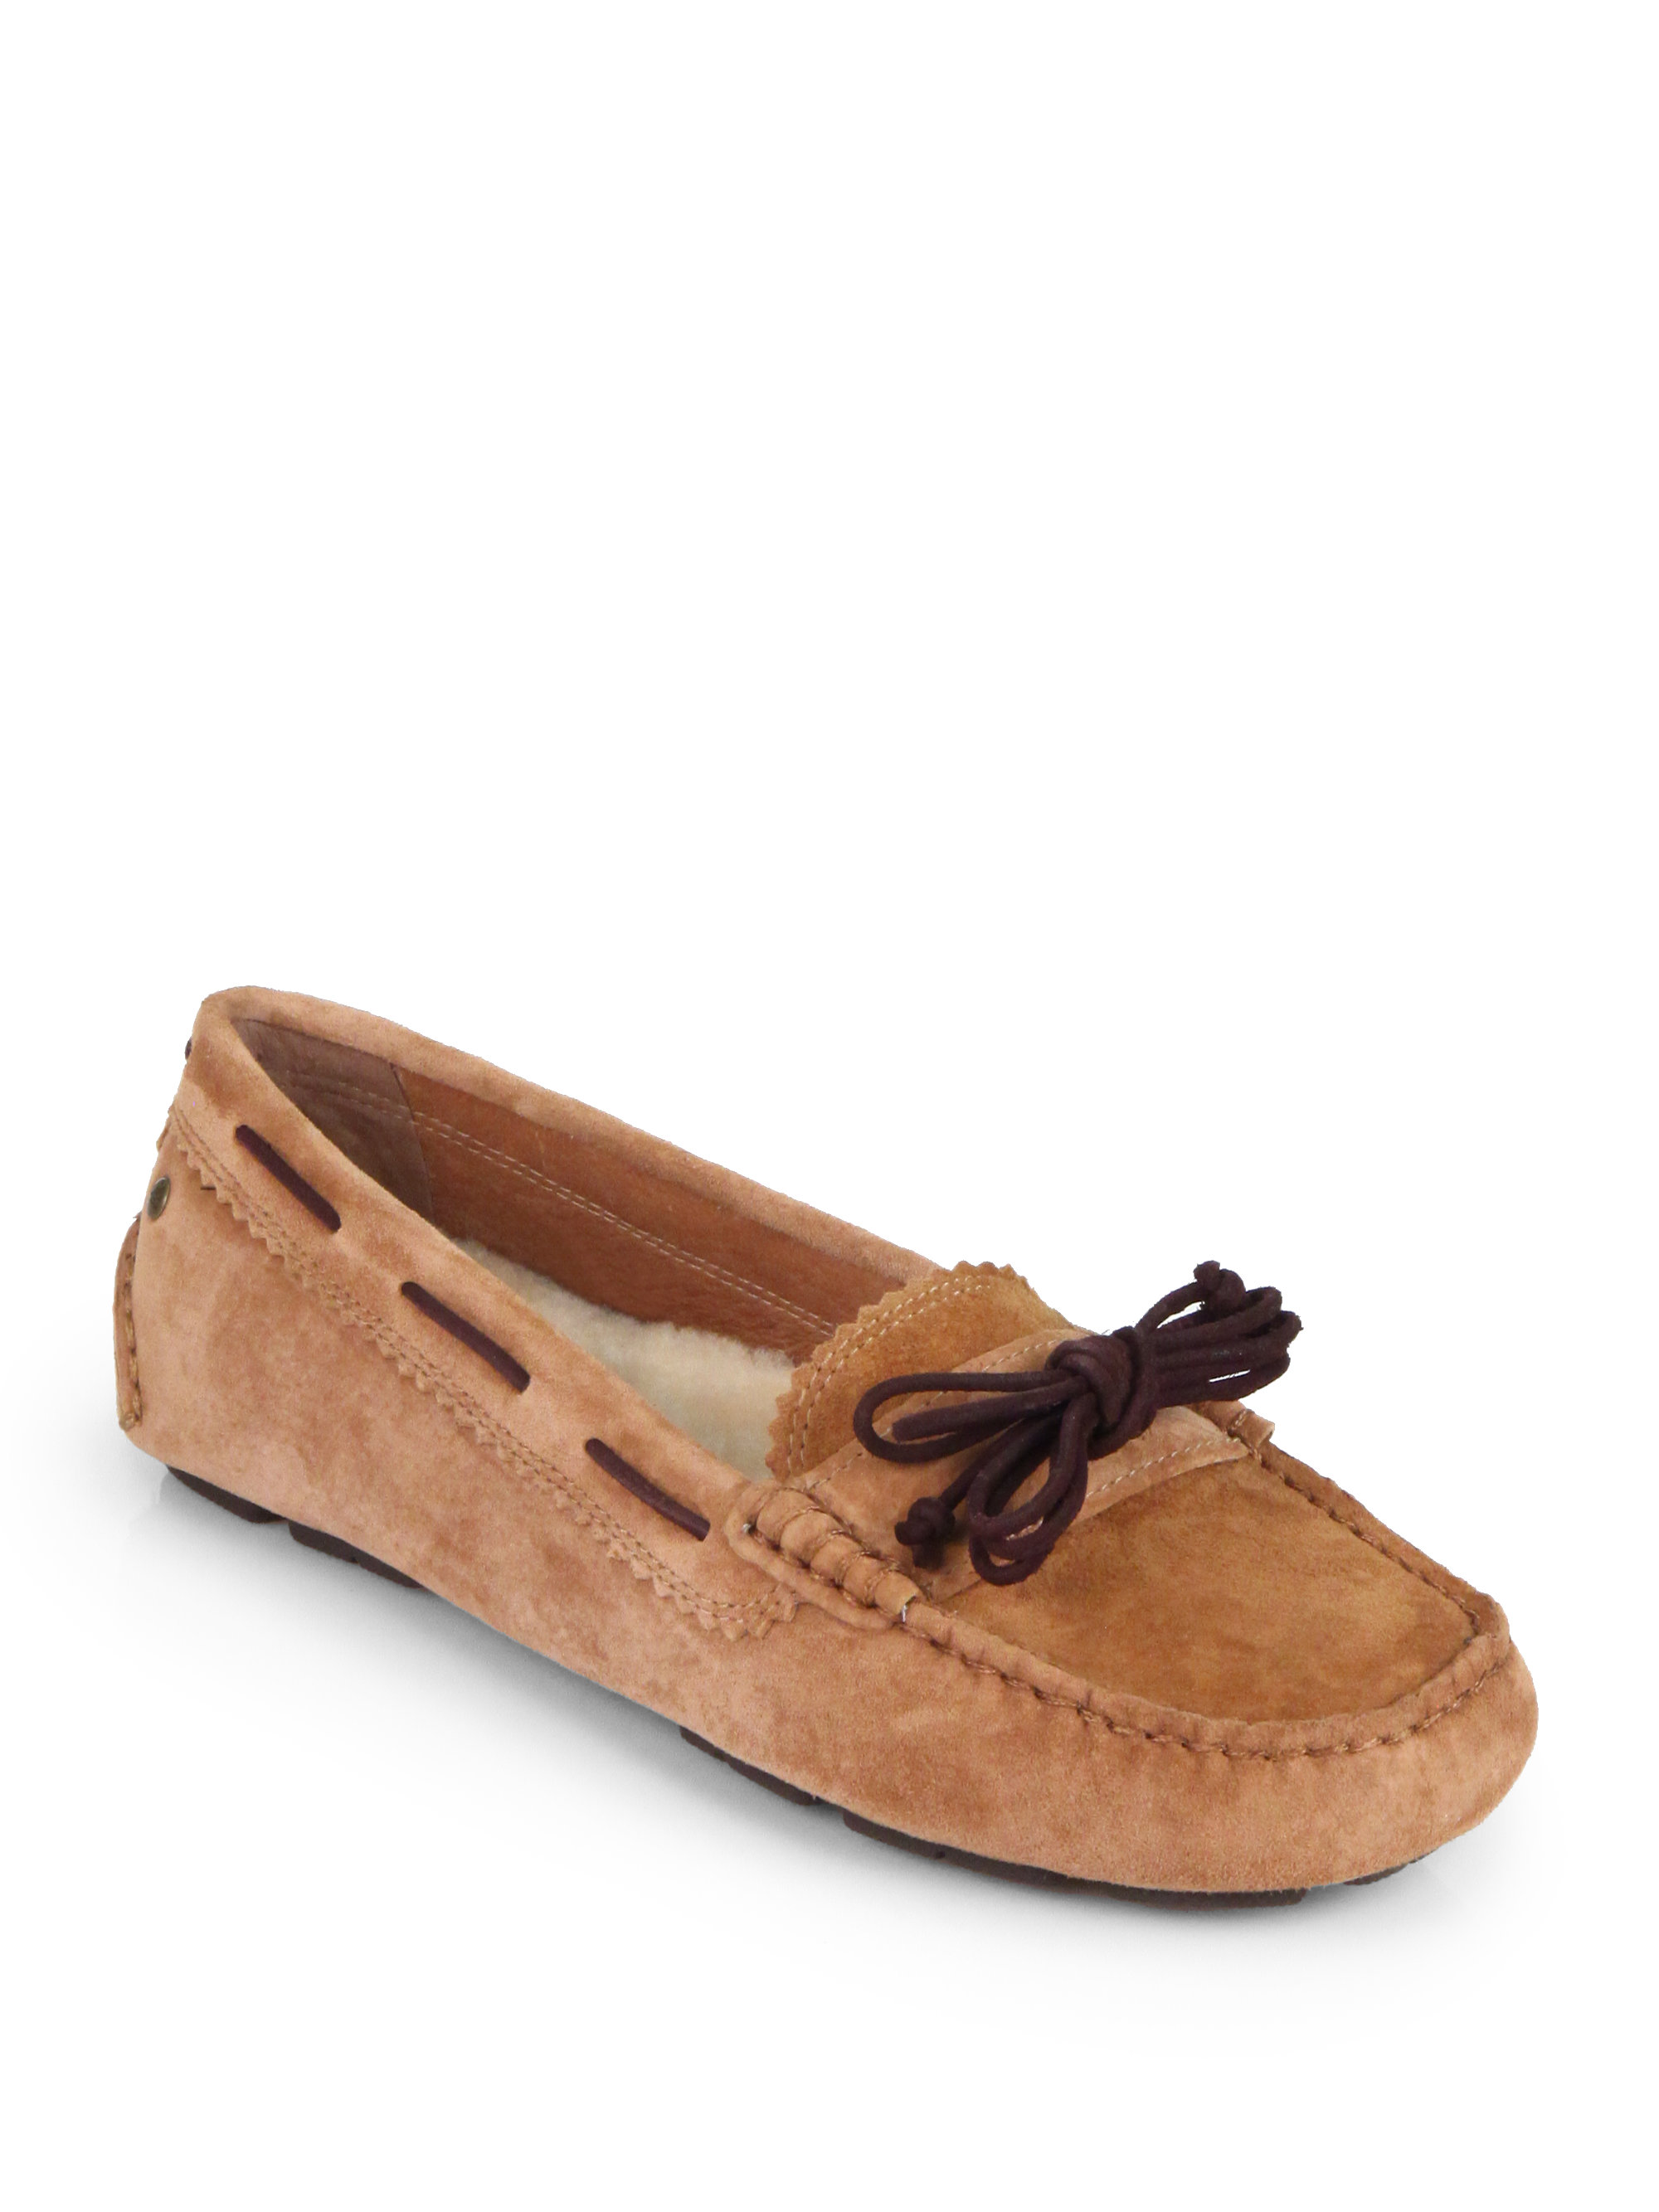 61022d06b0a Lyst - UGG Meena Suede Leather Bow Drivers in Brown